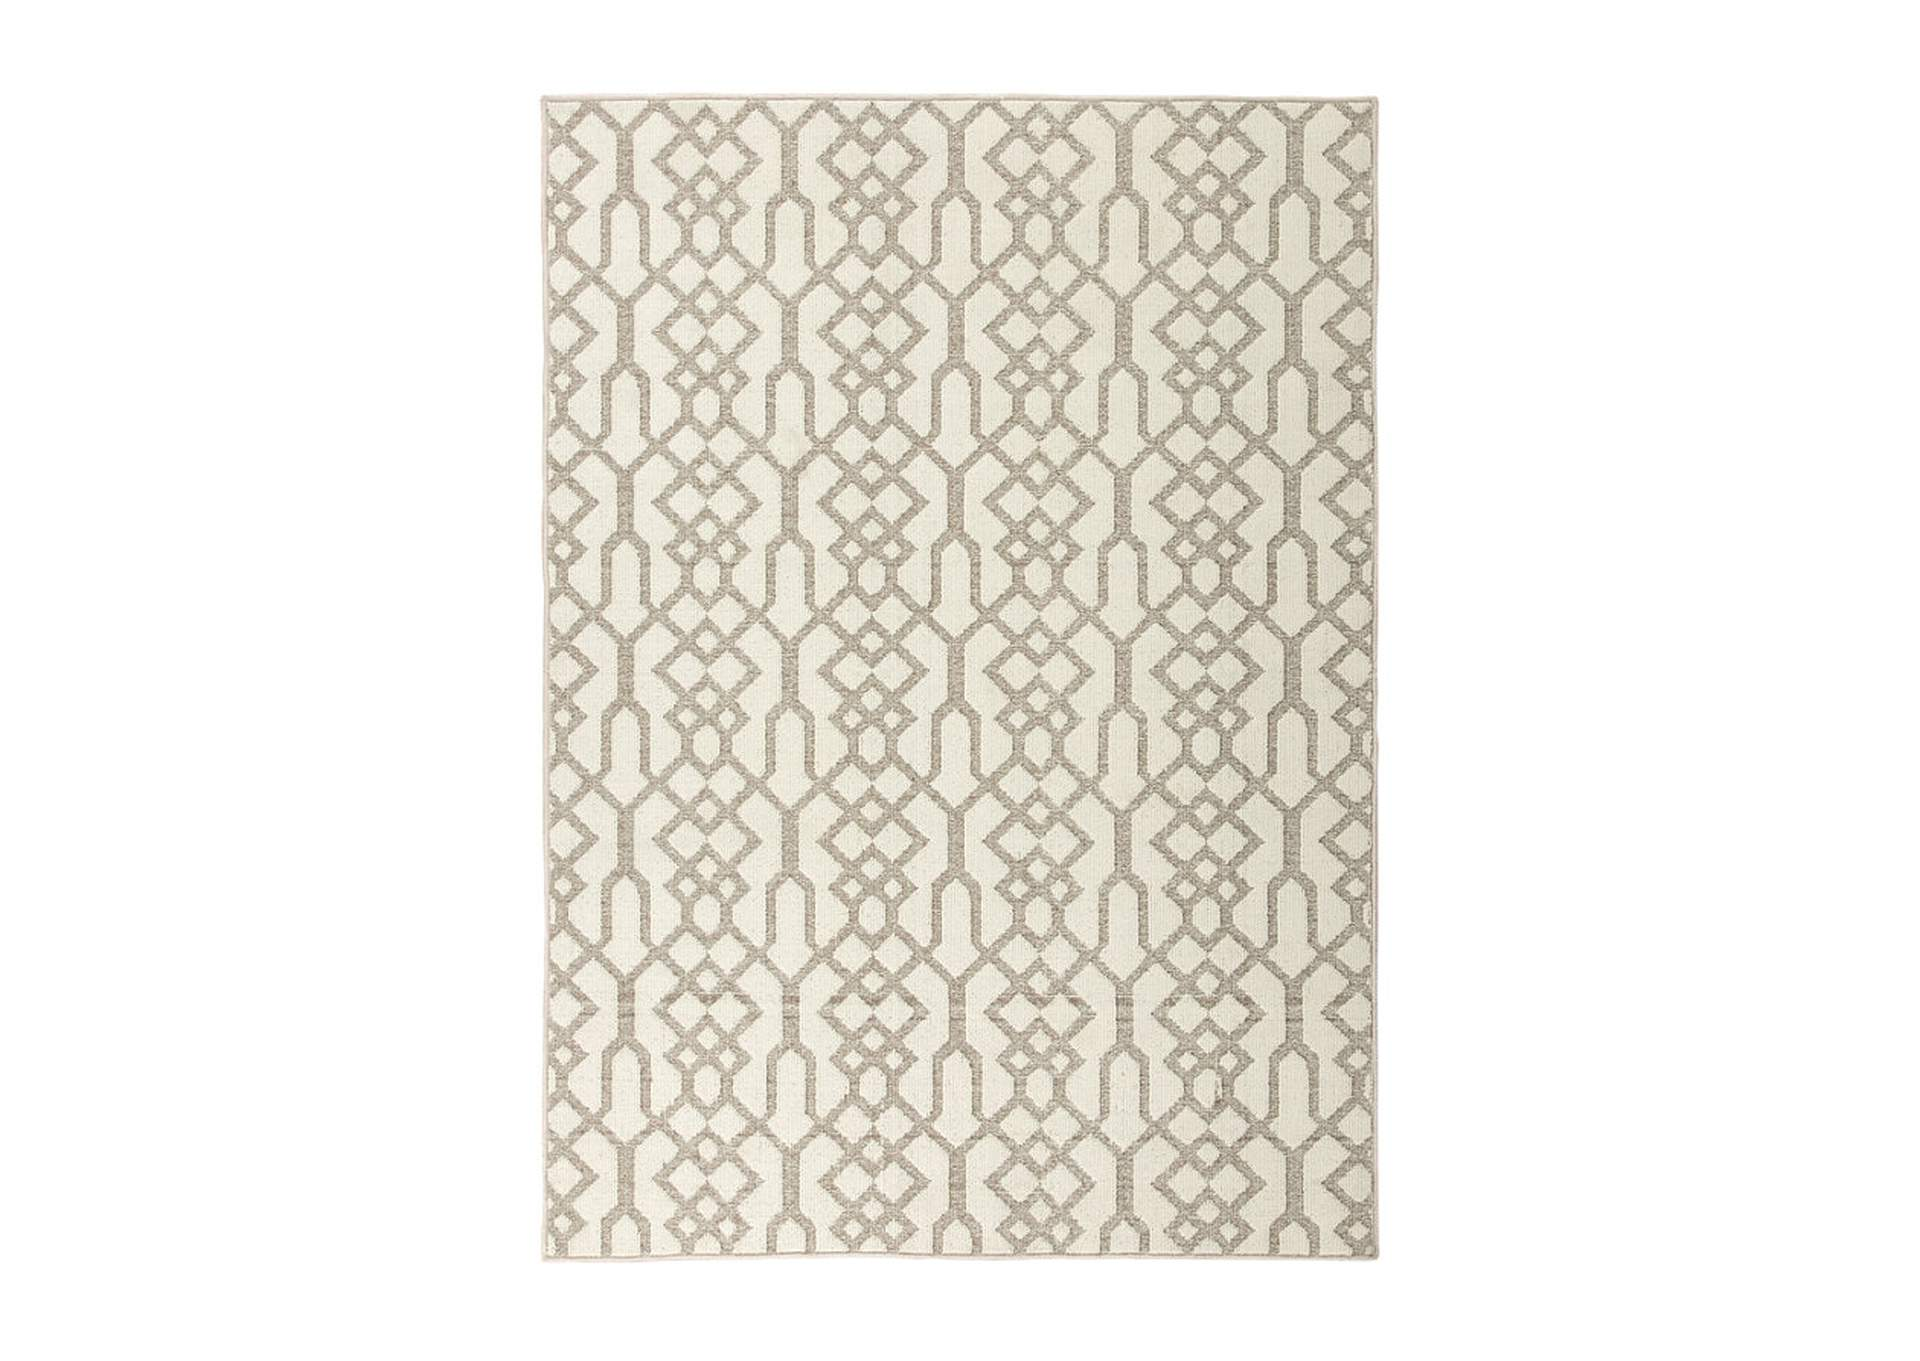 Coulee Natural Medium Rug,Signature Design By Ashley